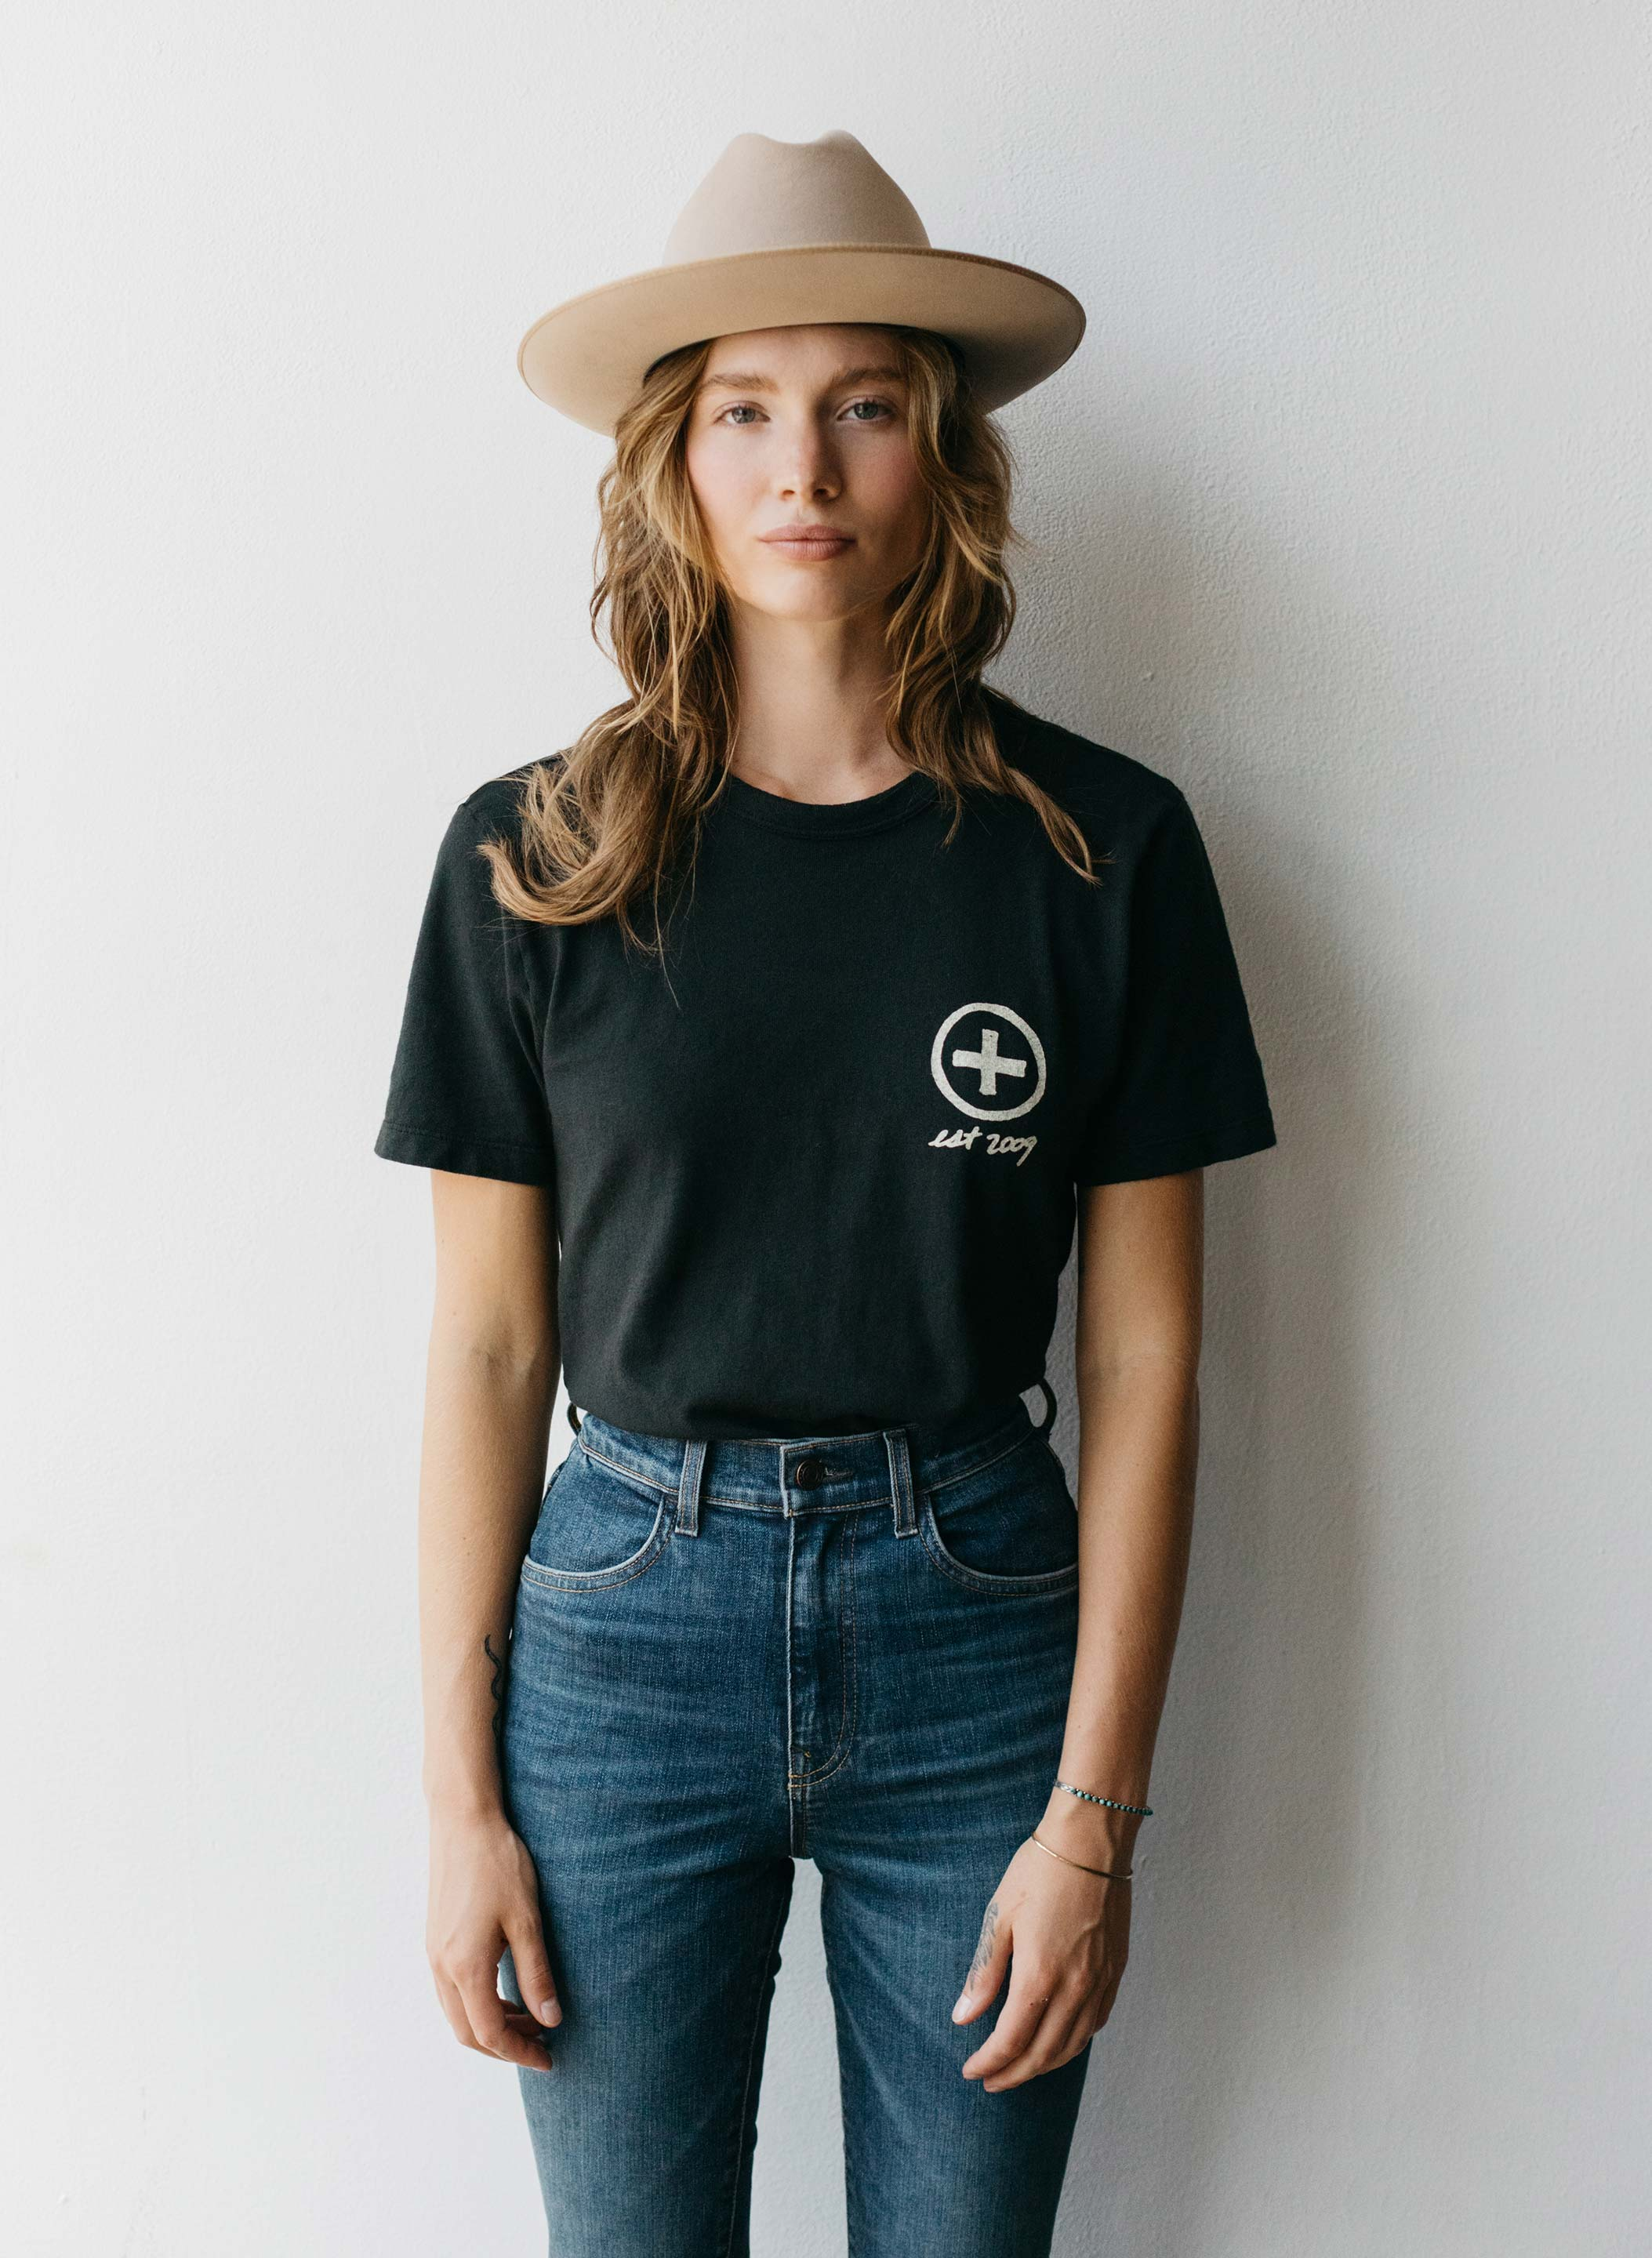 imogene + willie - made with love, made to last tee